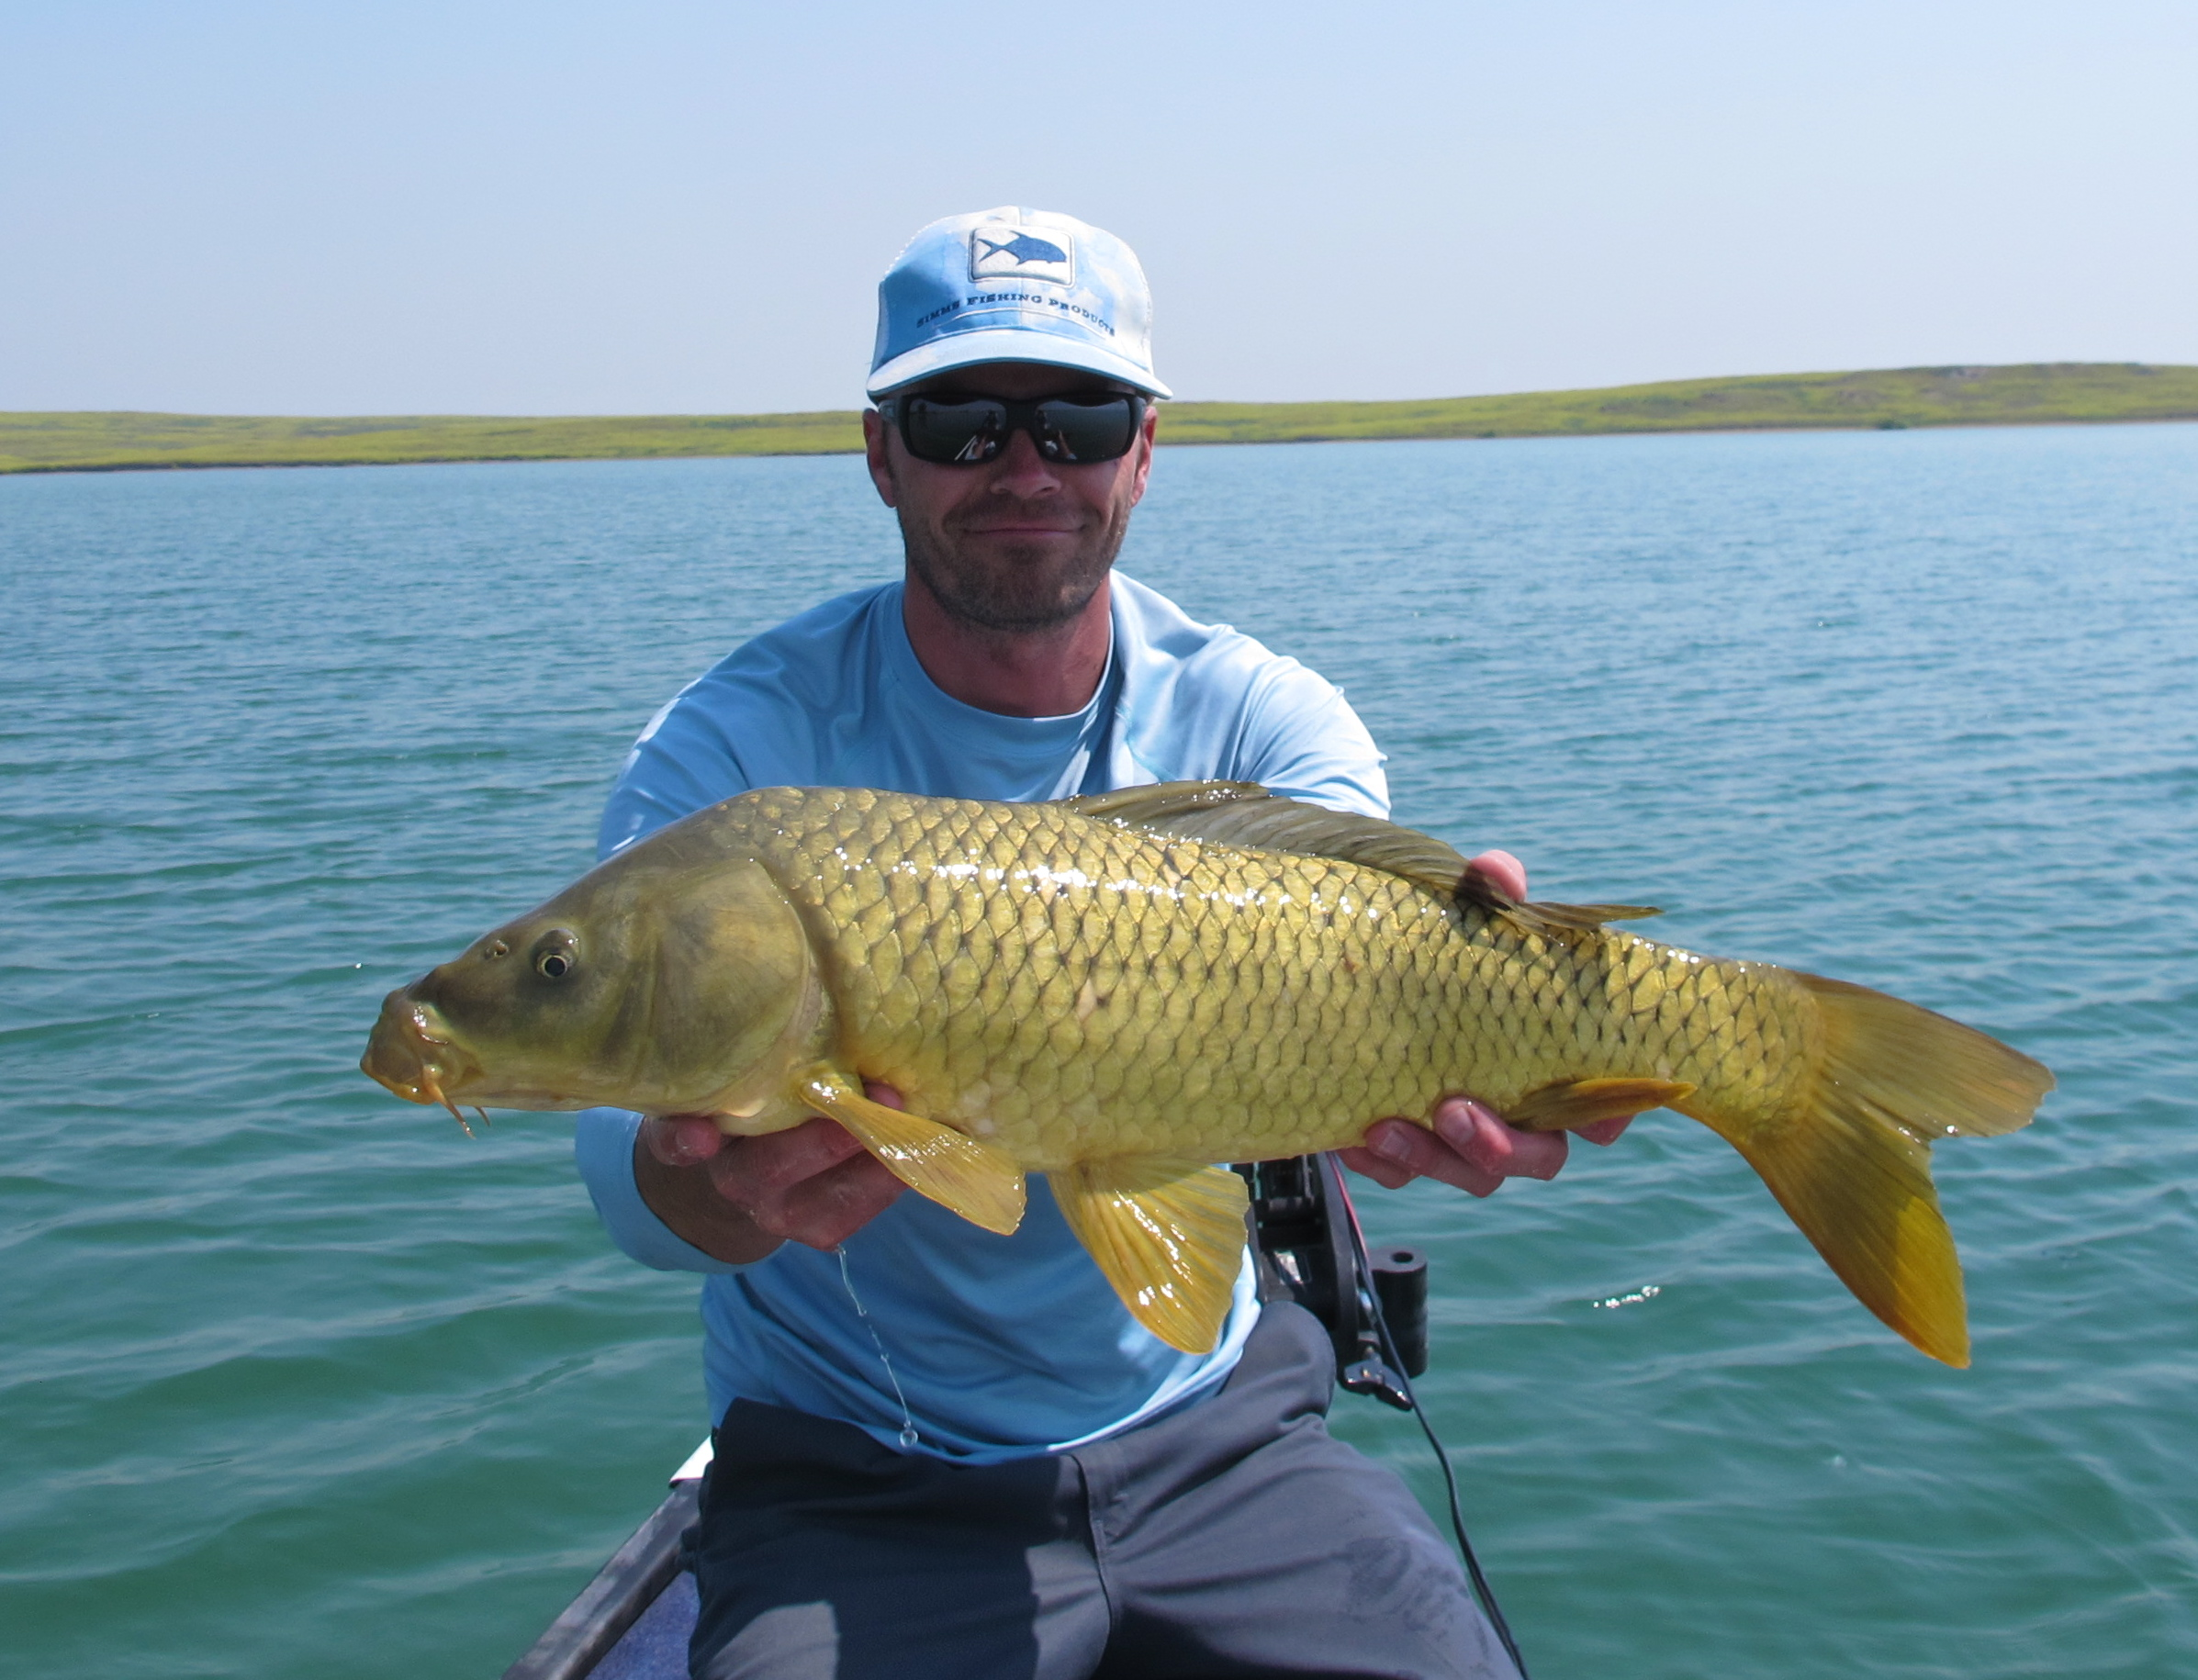 Black hills fishing report july 21st 2014 dakota angler for North dakota fishing report